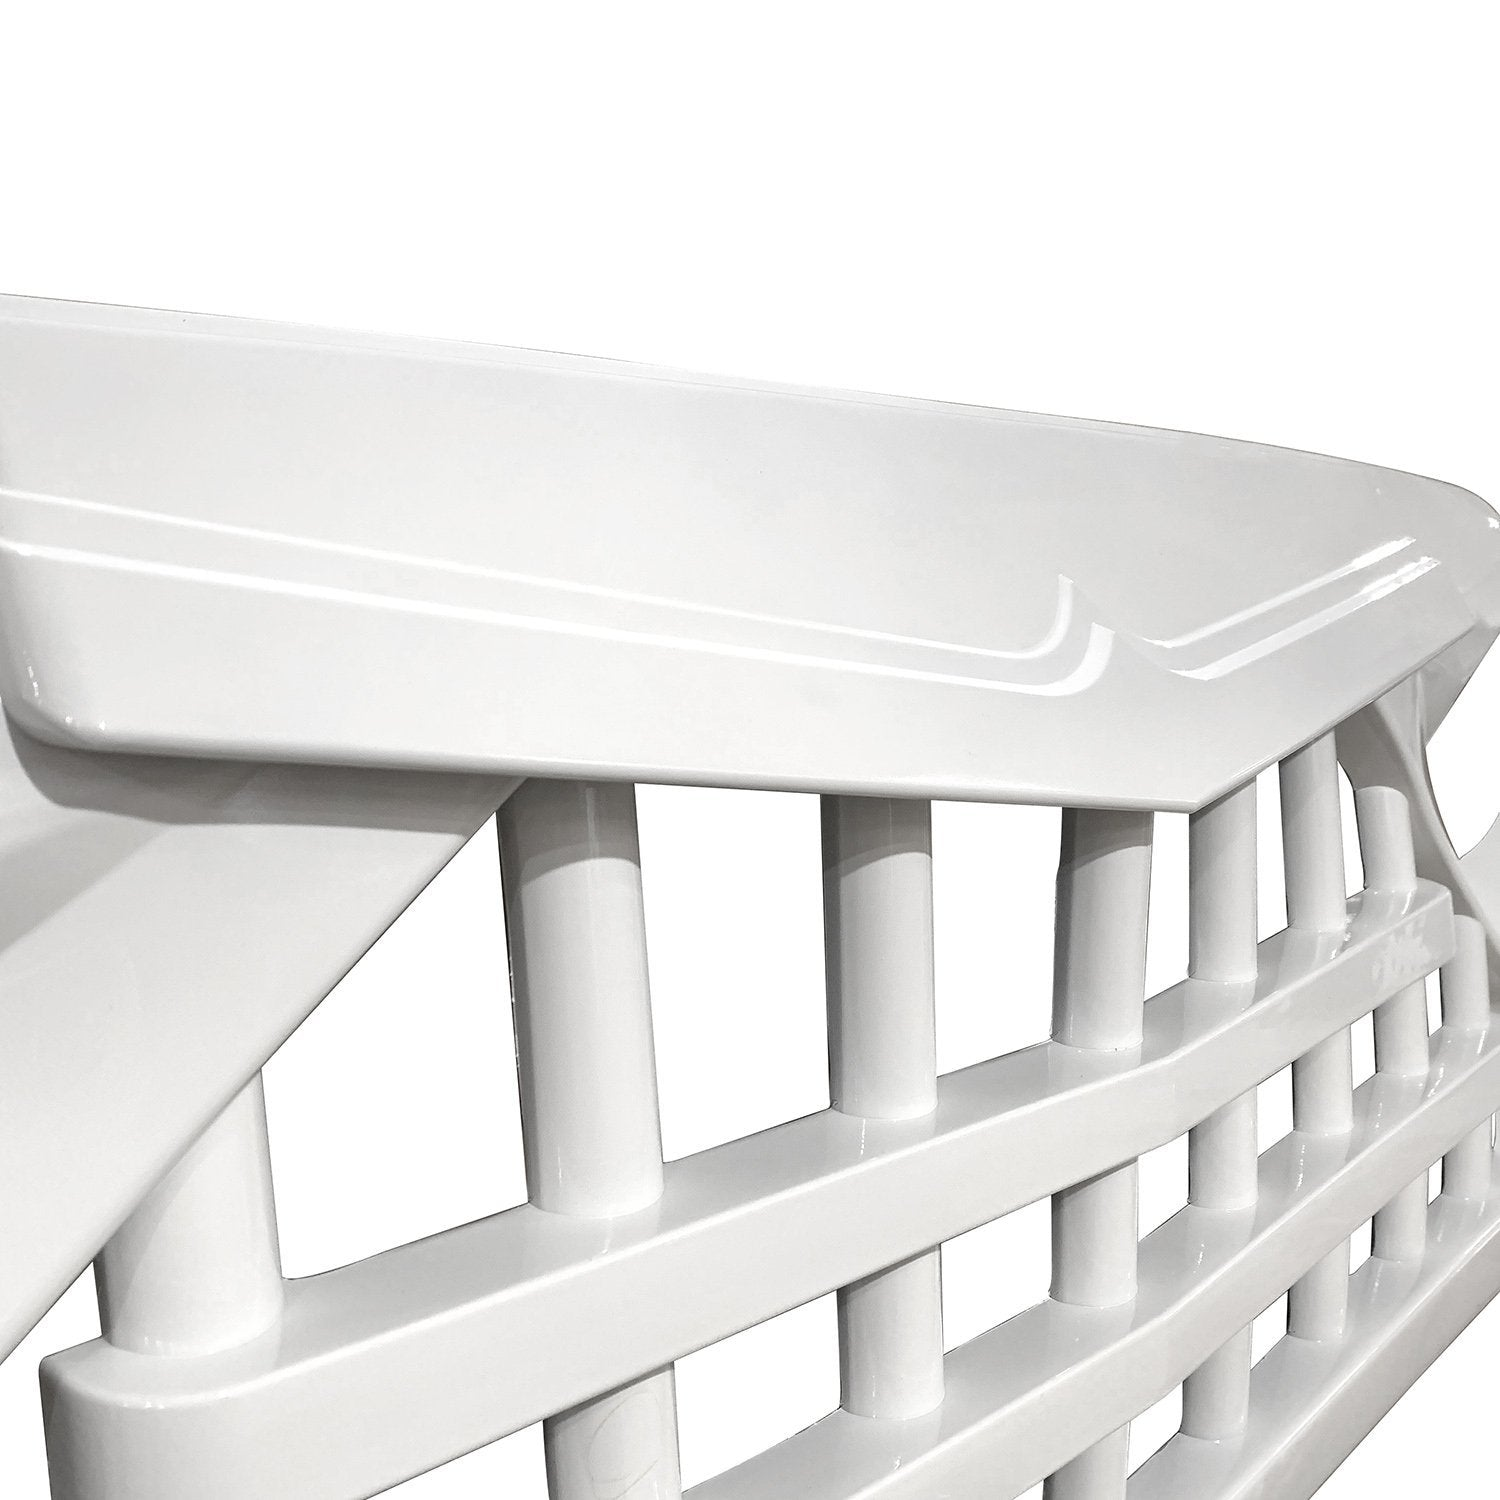 Glossy White Knight Grill For Jeep Wrangler JK 07-18